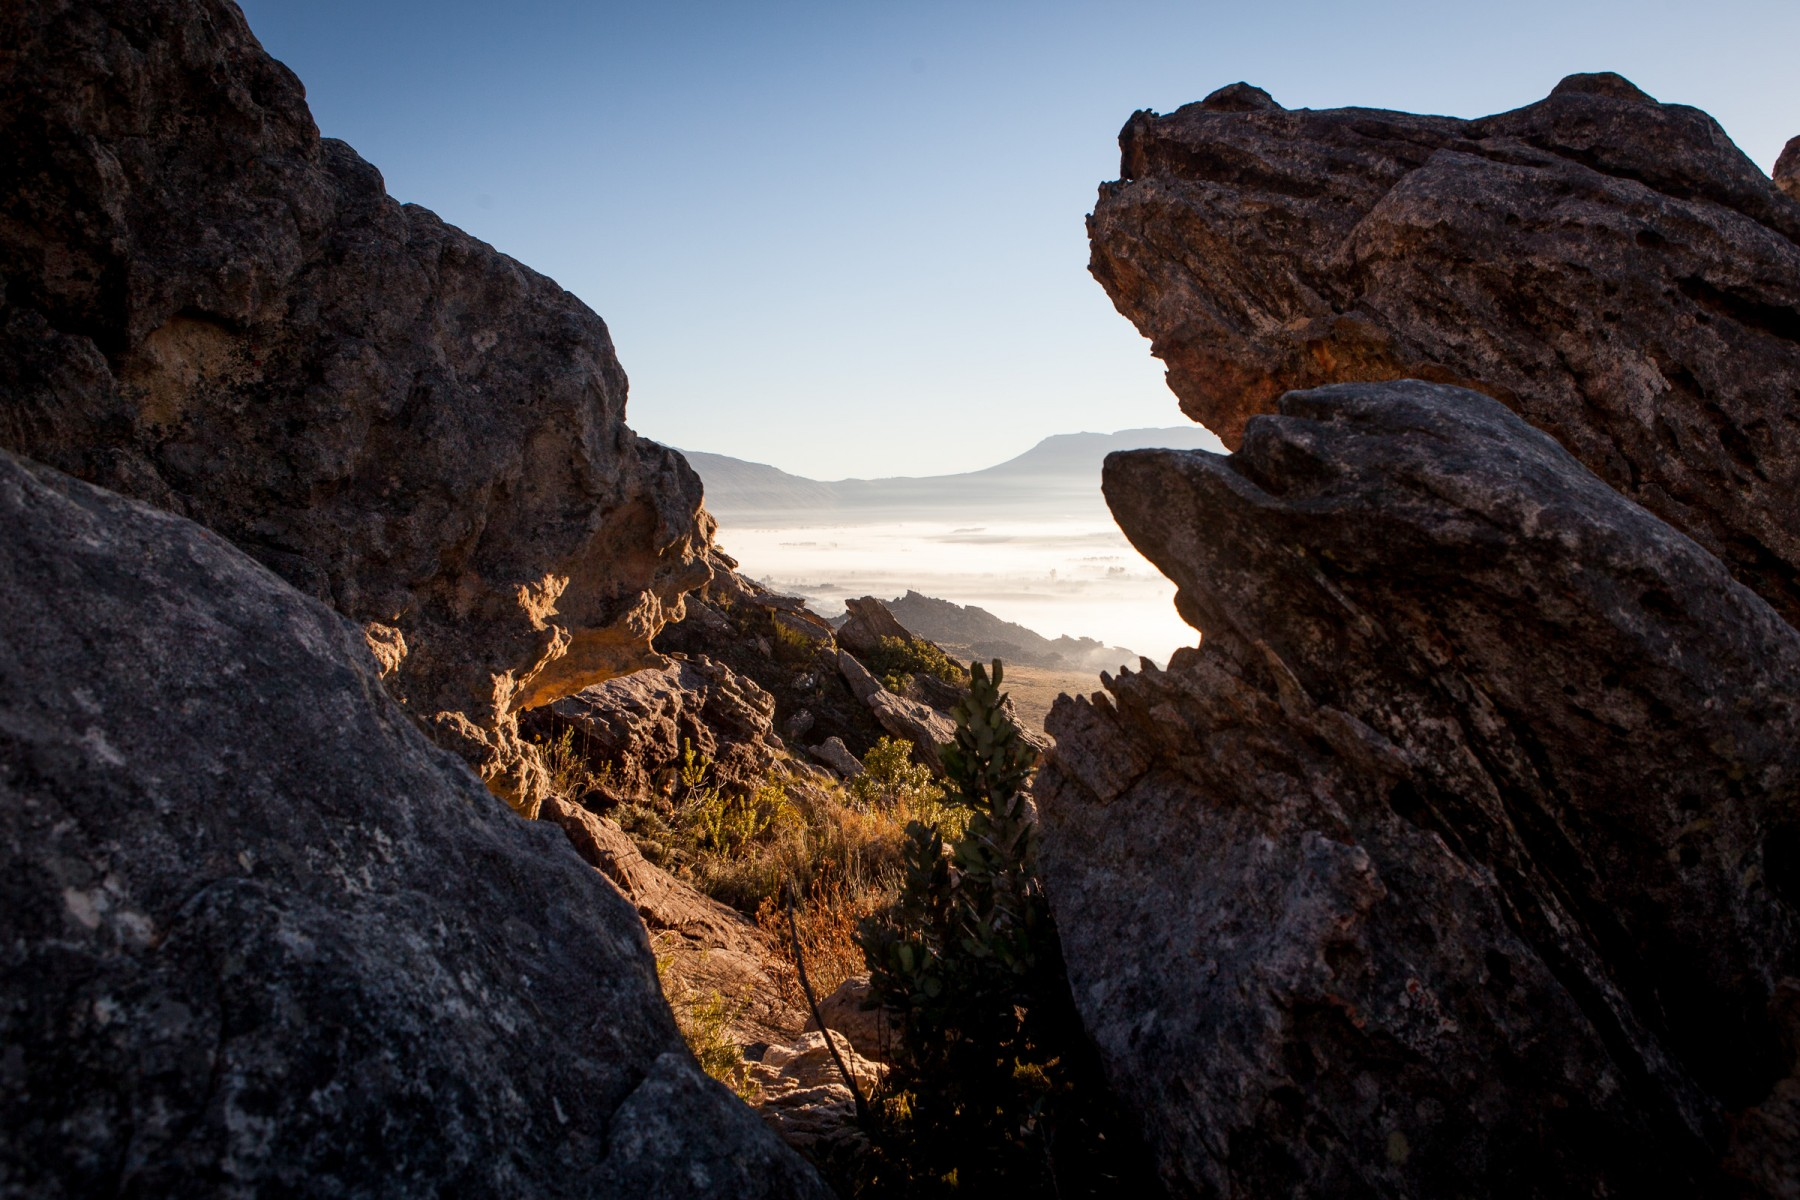 Rocks above Mitchell's pass near South Africa's Ceres valley.